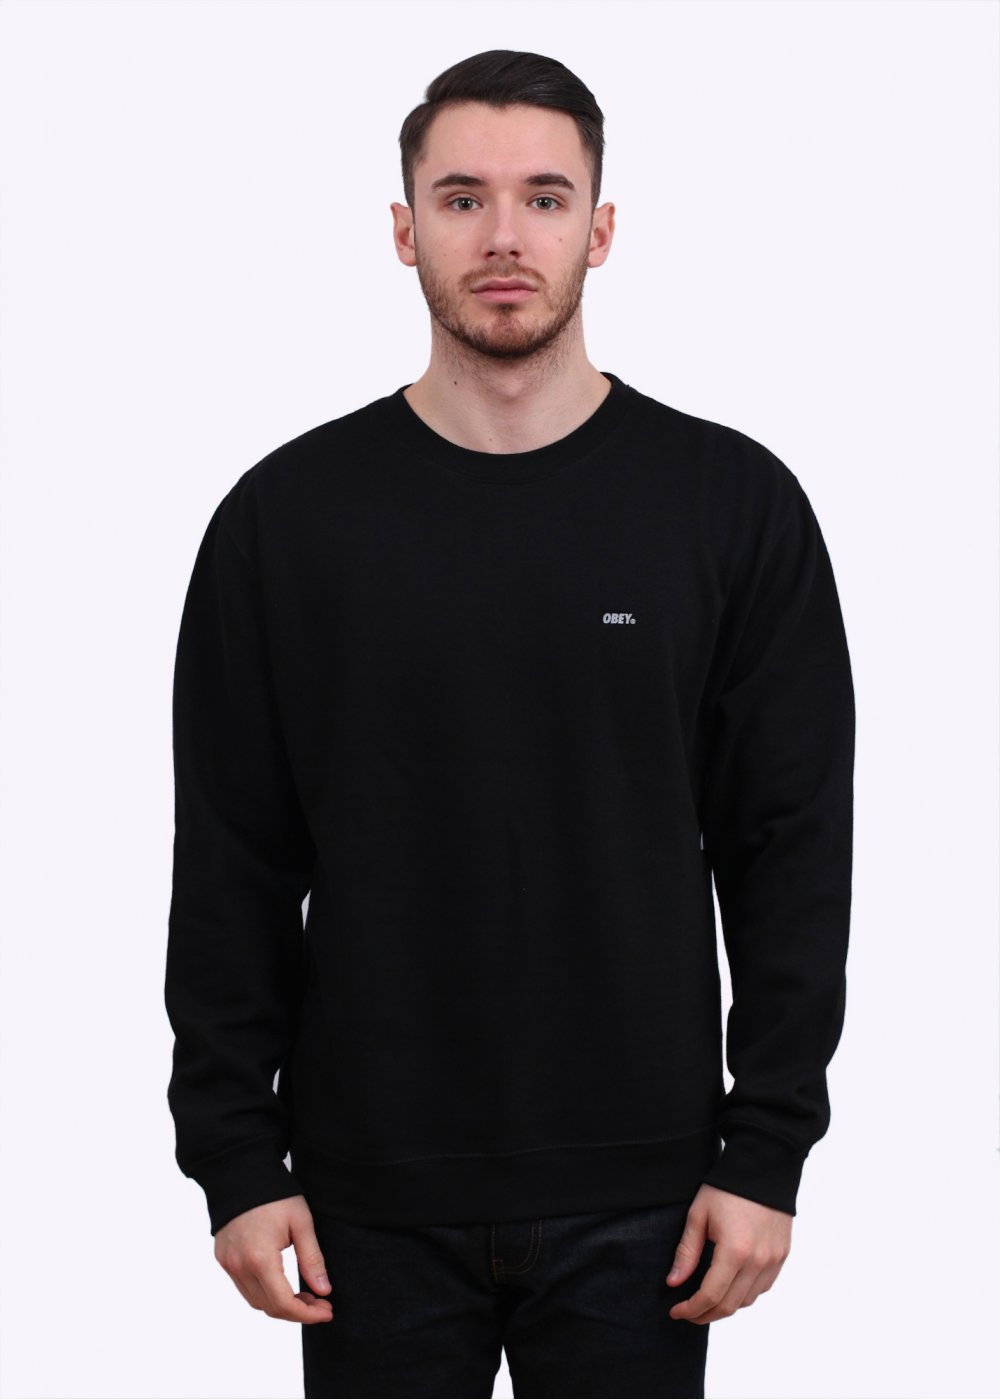 Obey Font Reflective Sweater - Black